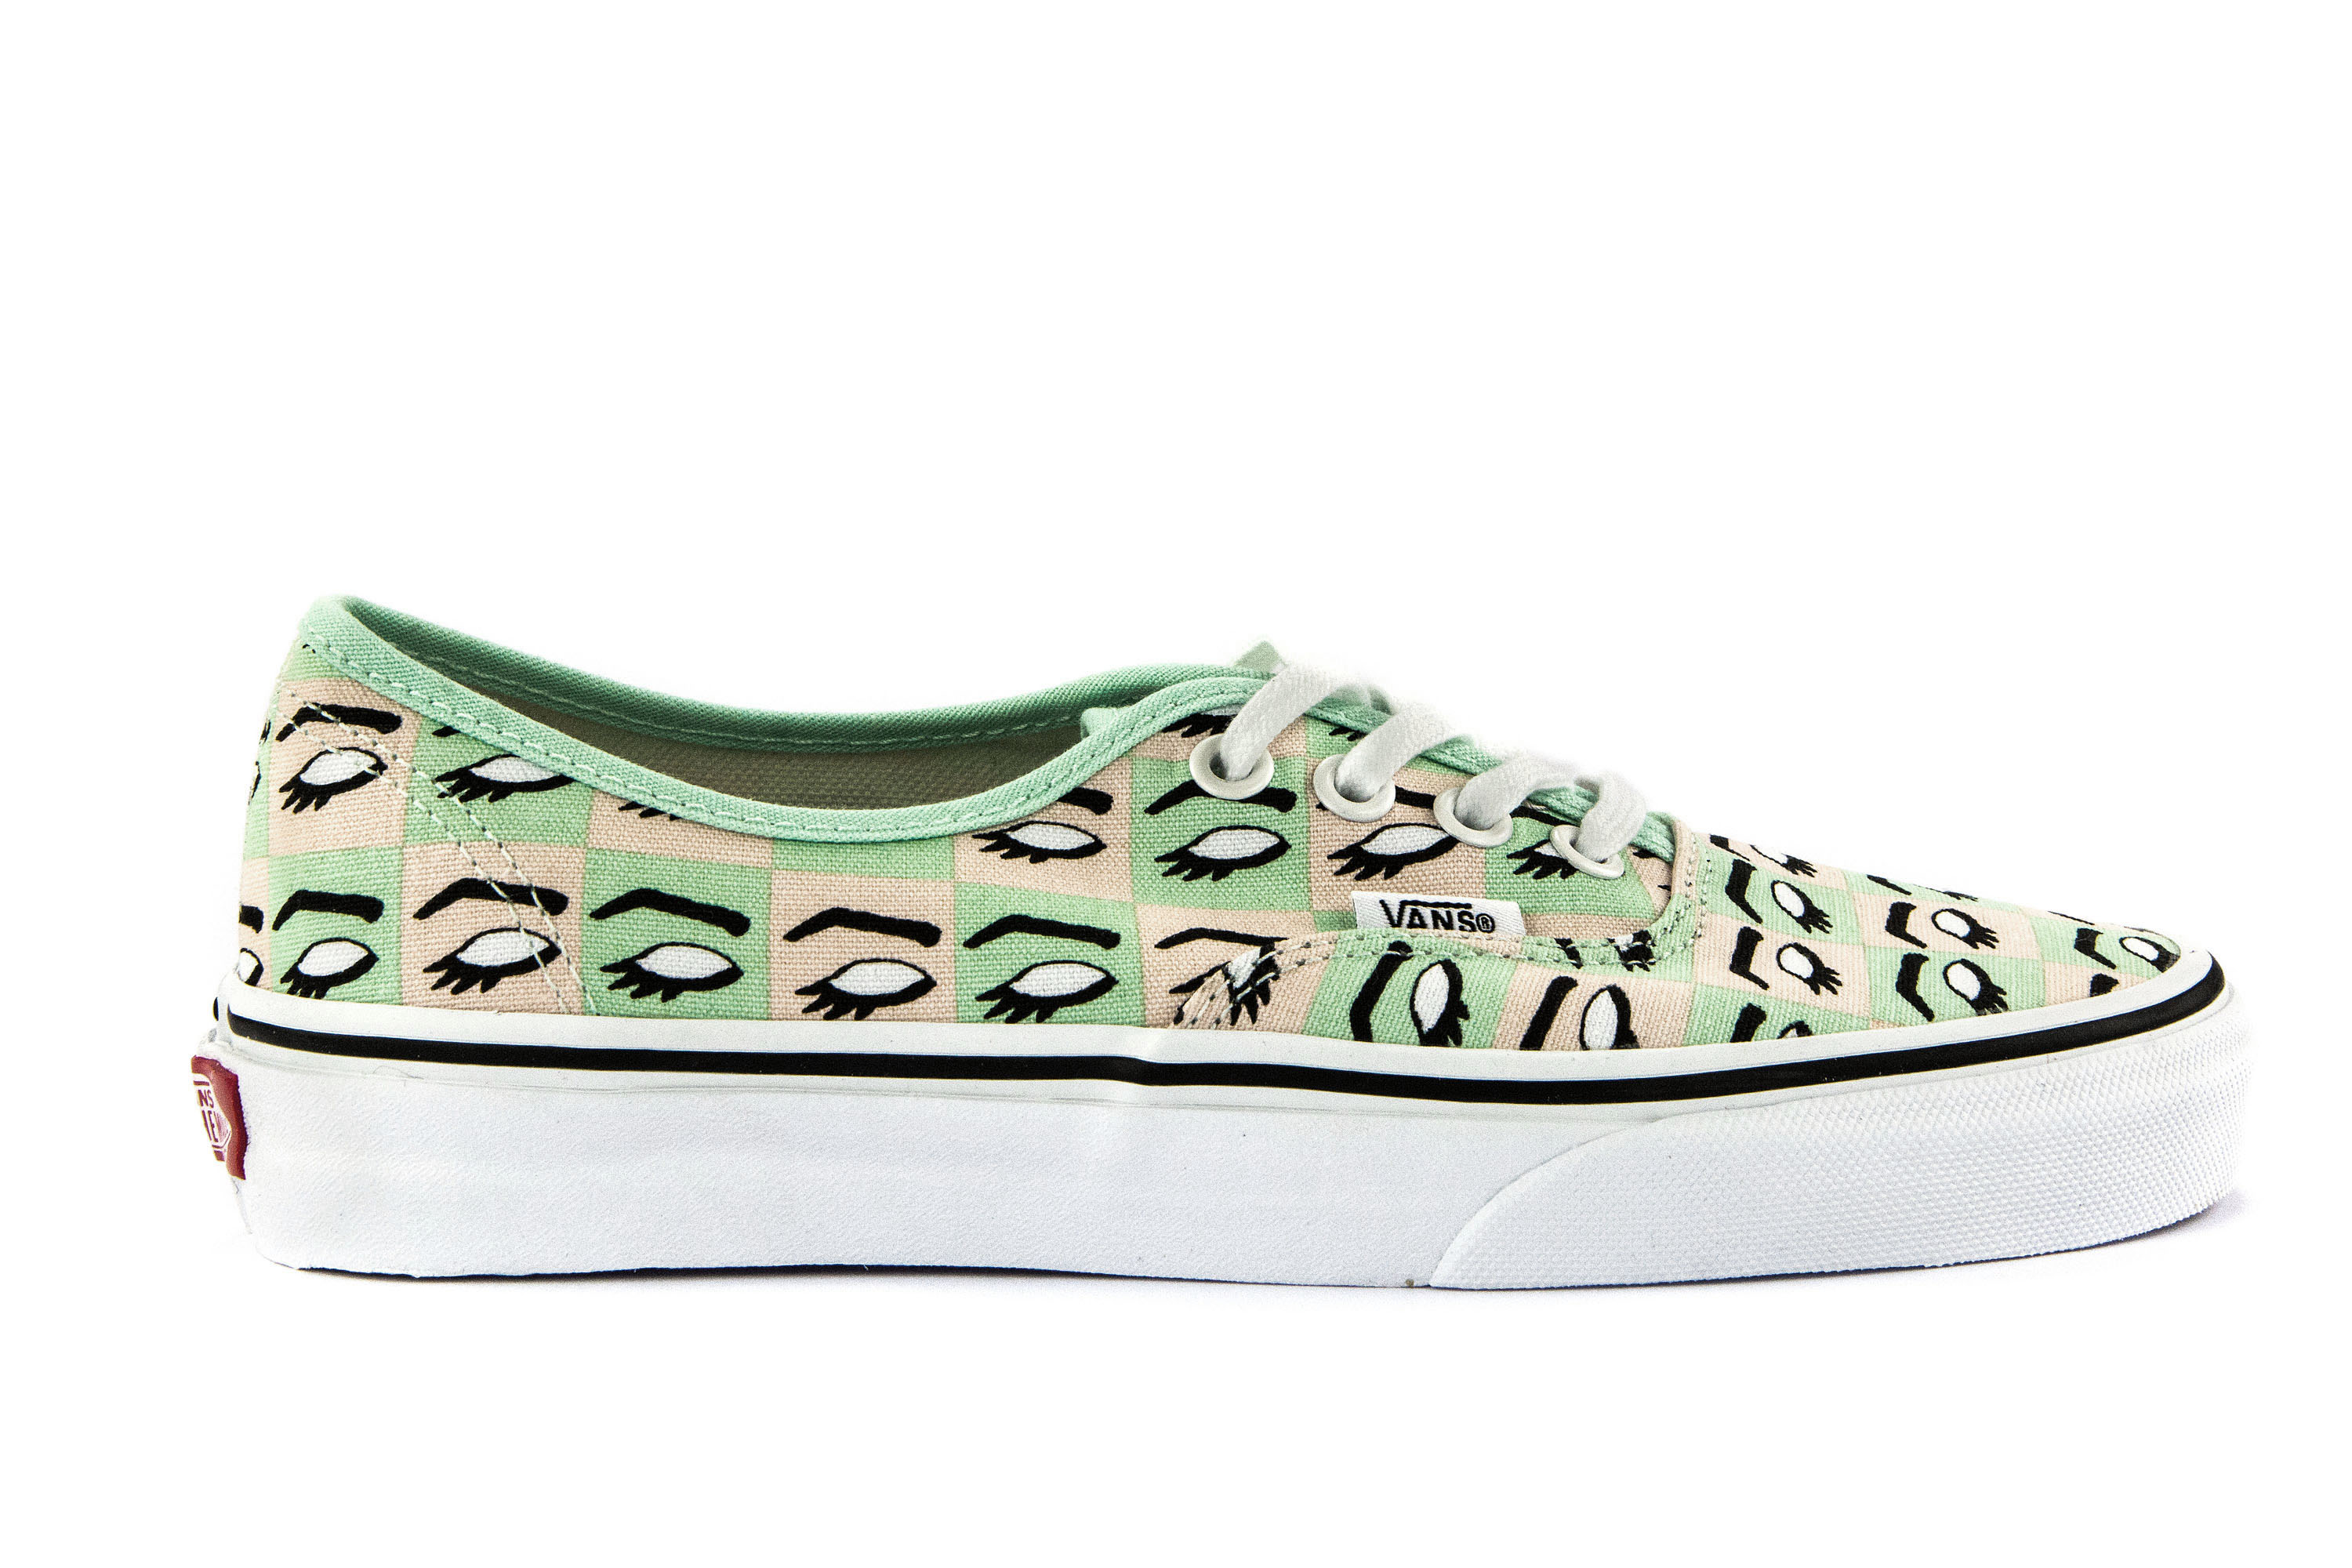 ad8fcd090cae31 VANS Womens Shoes Lace-Up Sneakers AUTHENTIC (KENDRA DANDY) White ...